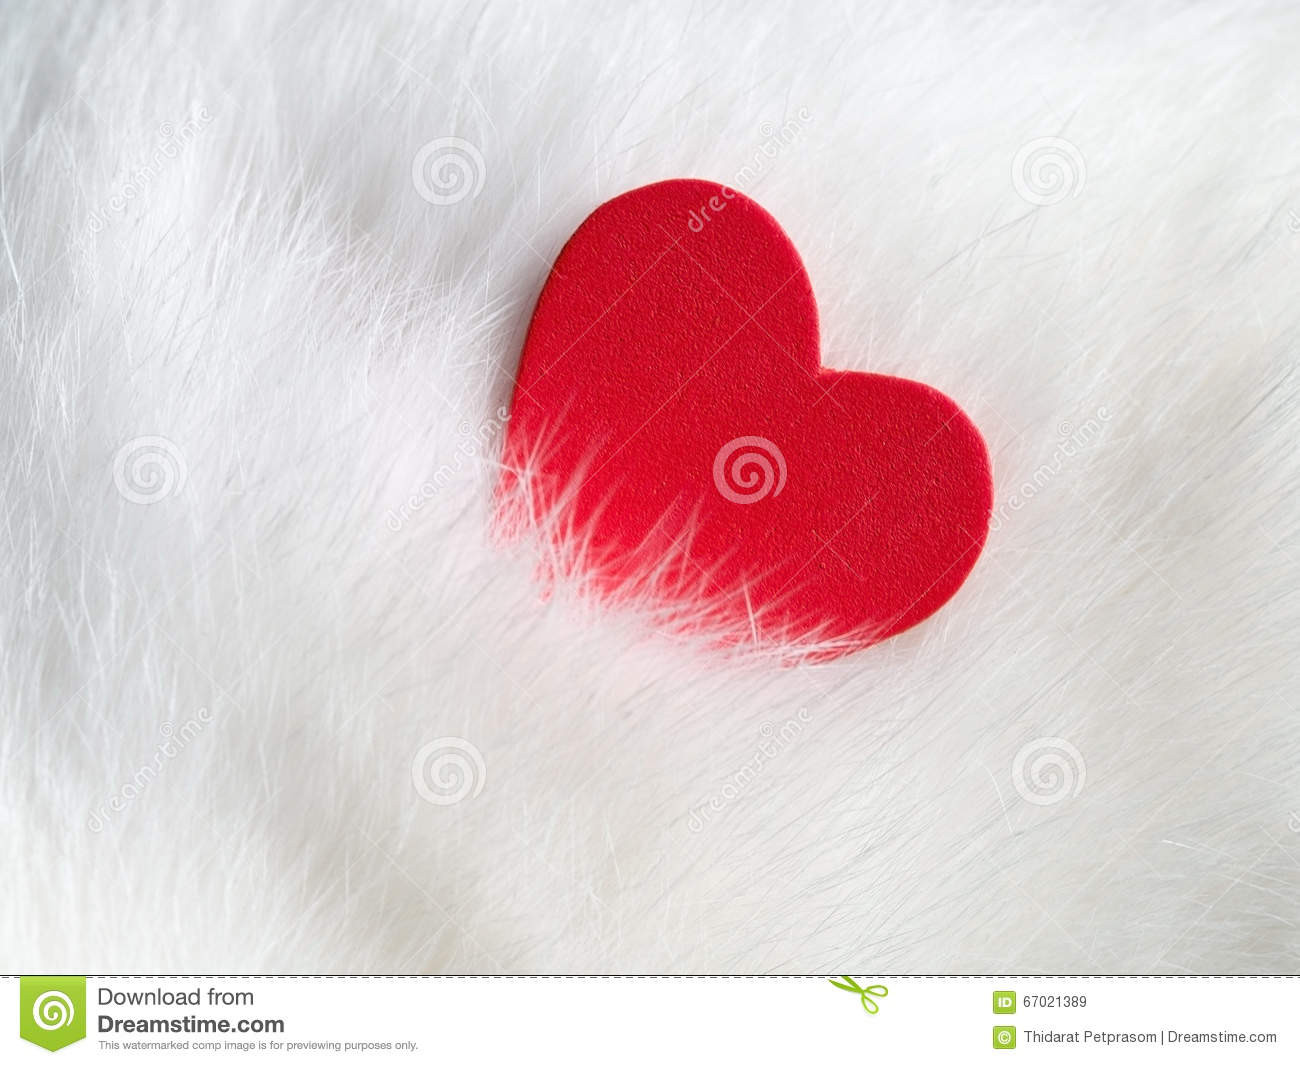 Red Heart with Love Awesome Love Concept Valentine S Day Background Red Heart with Red Of Awesome 41 Ideas Red Heart with Love